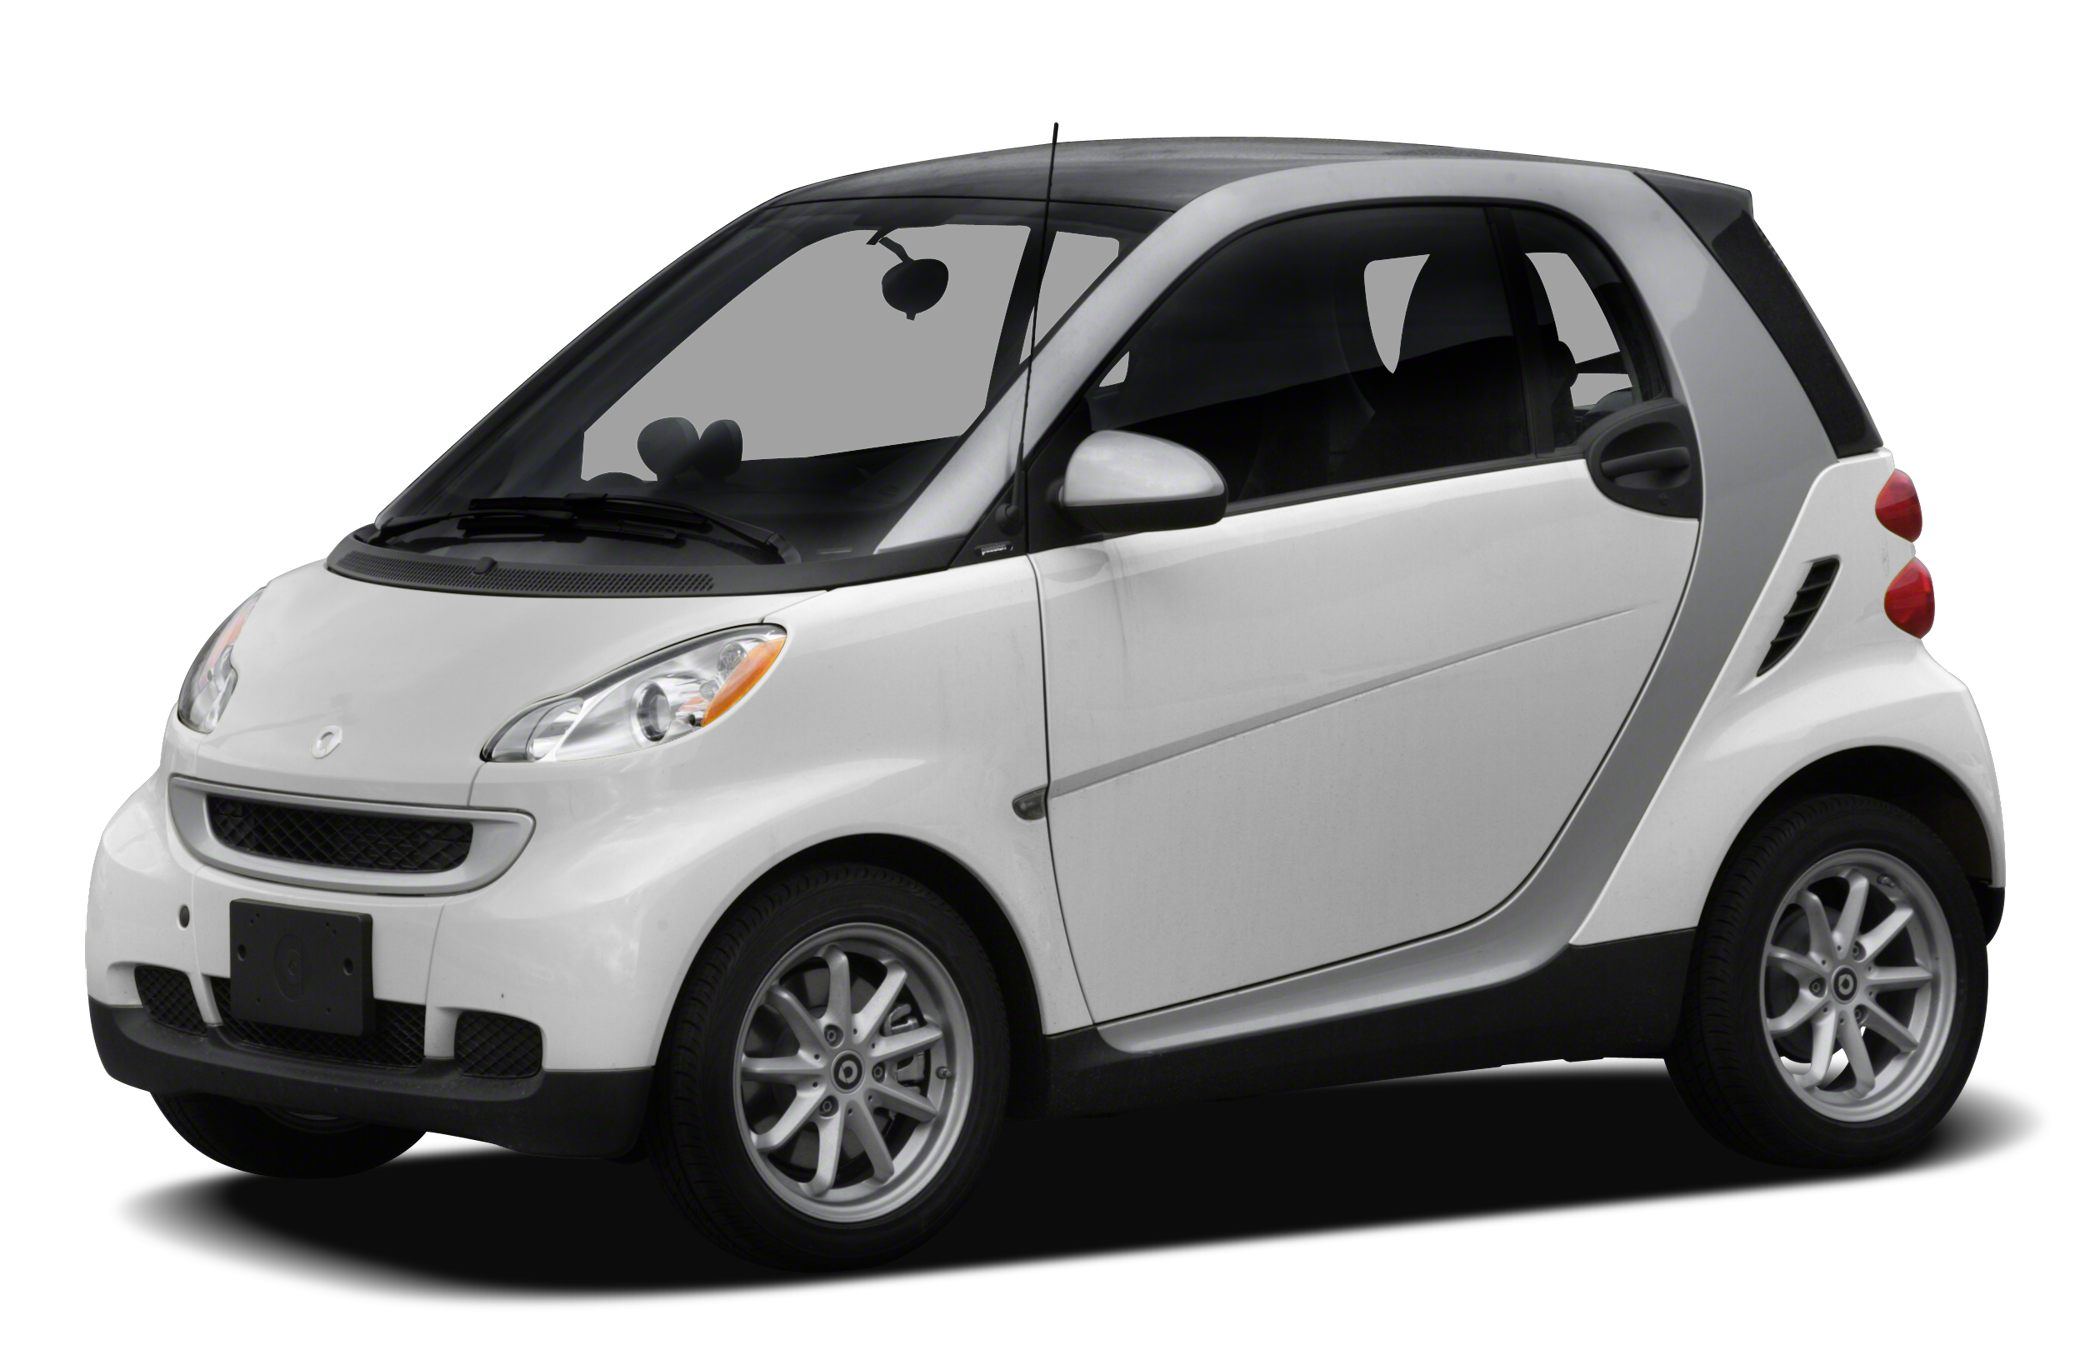 2012 smart fortwo  Vehicle Detailed Recent Oil Change and Passed Dealer Inspection Try and find